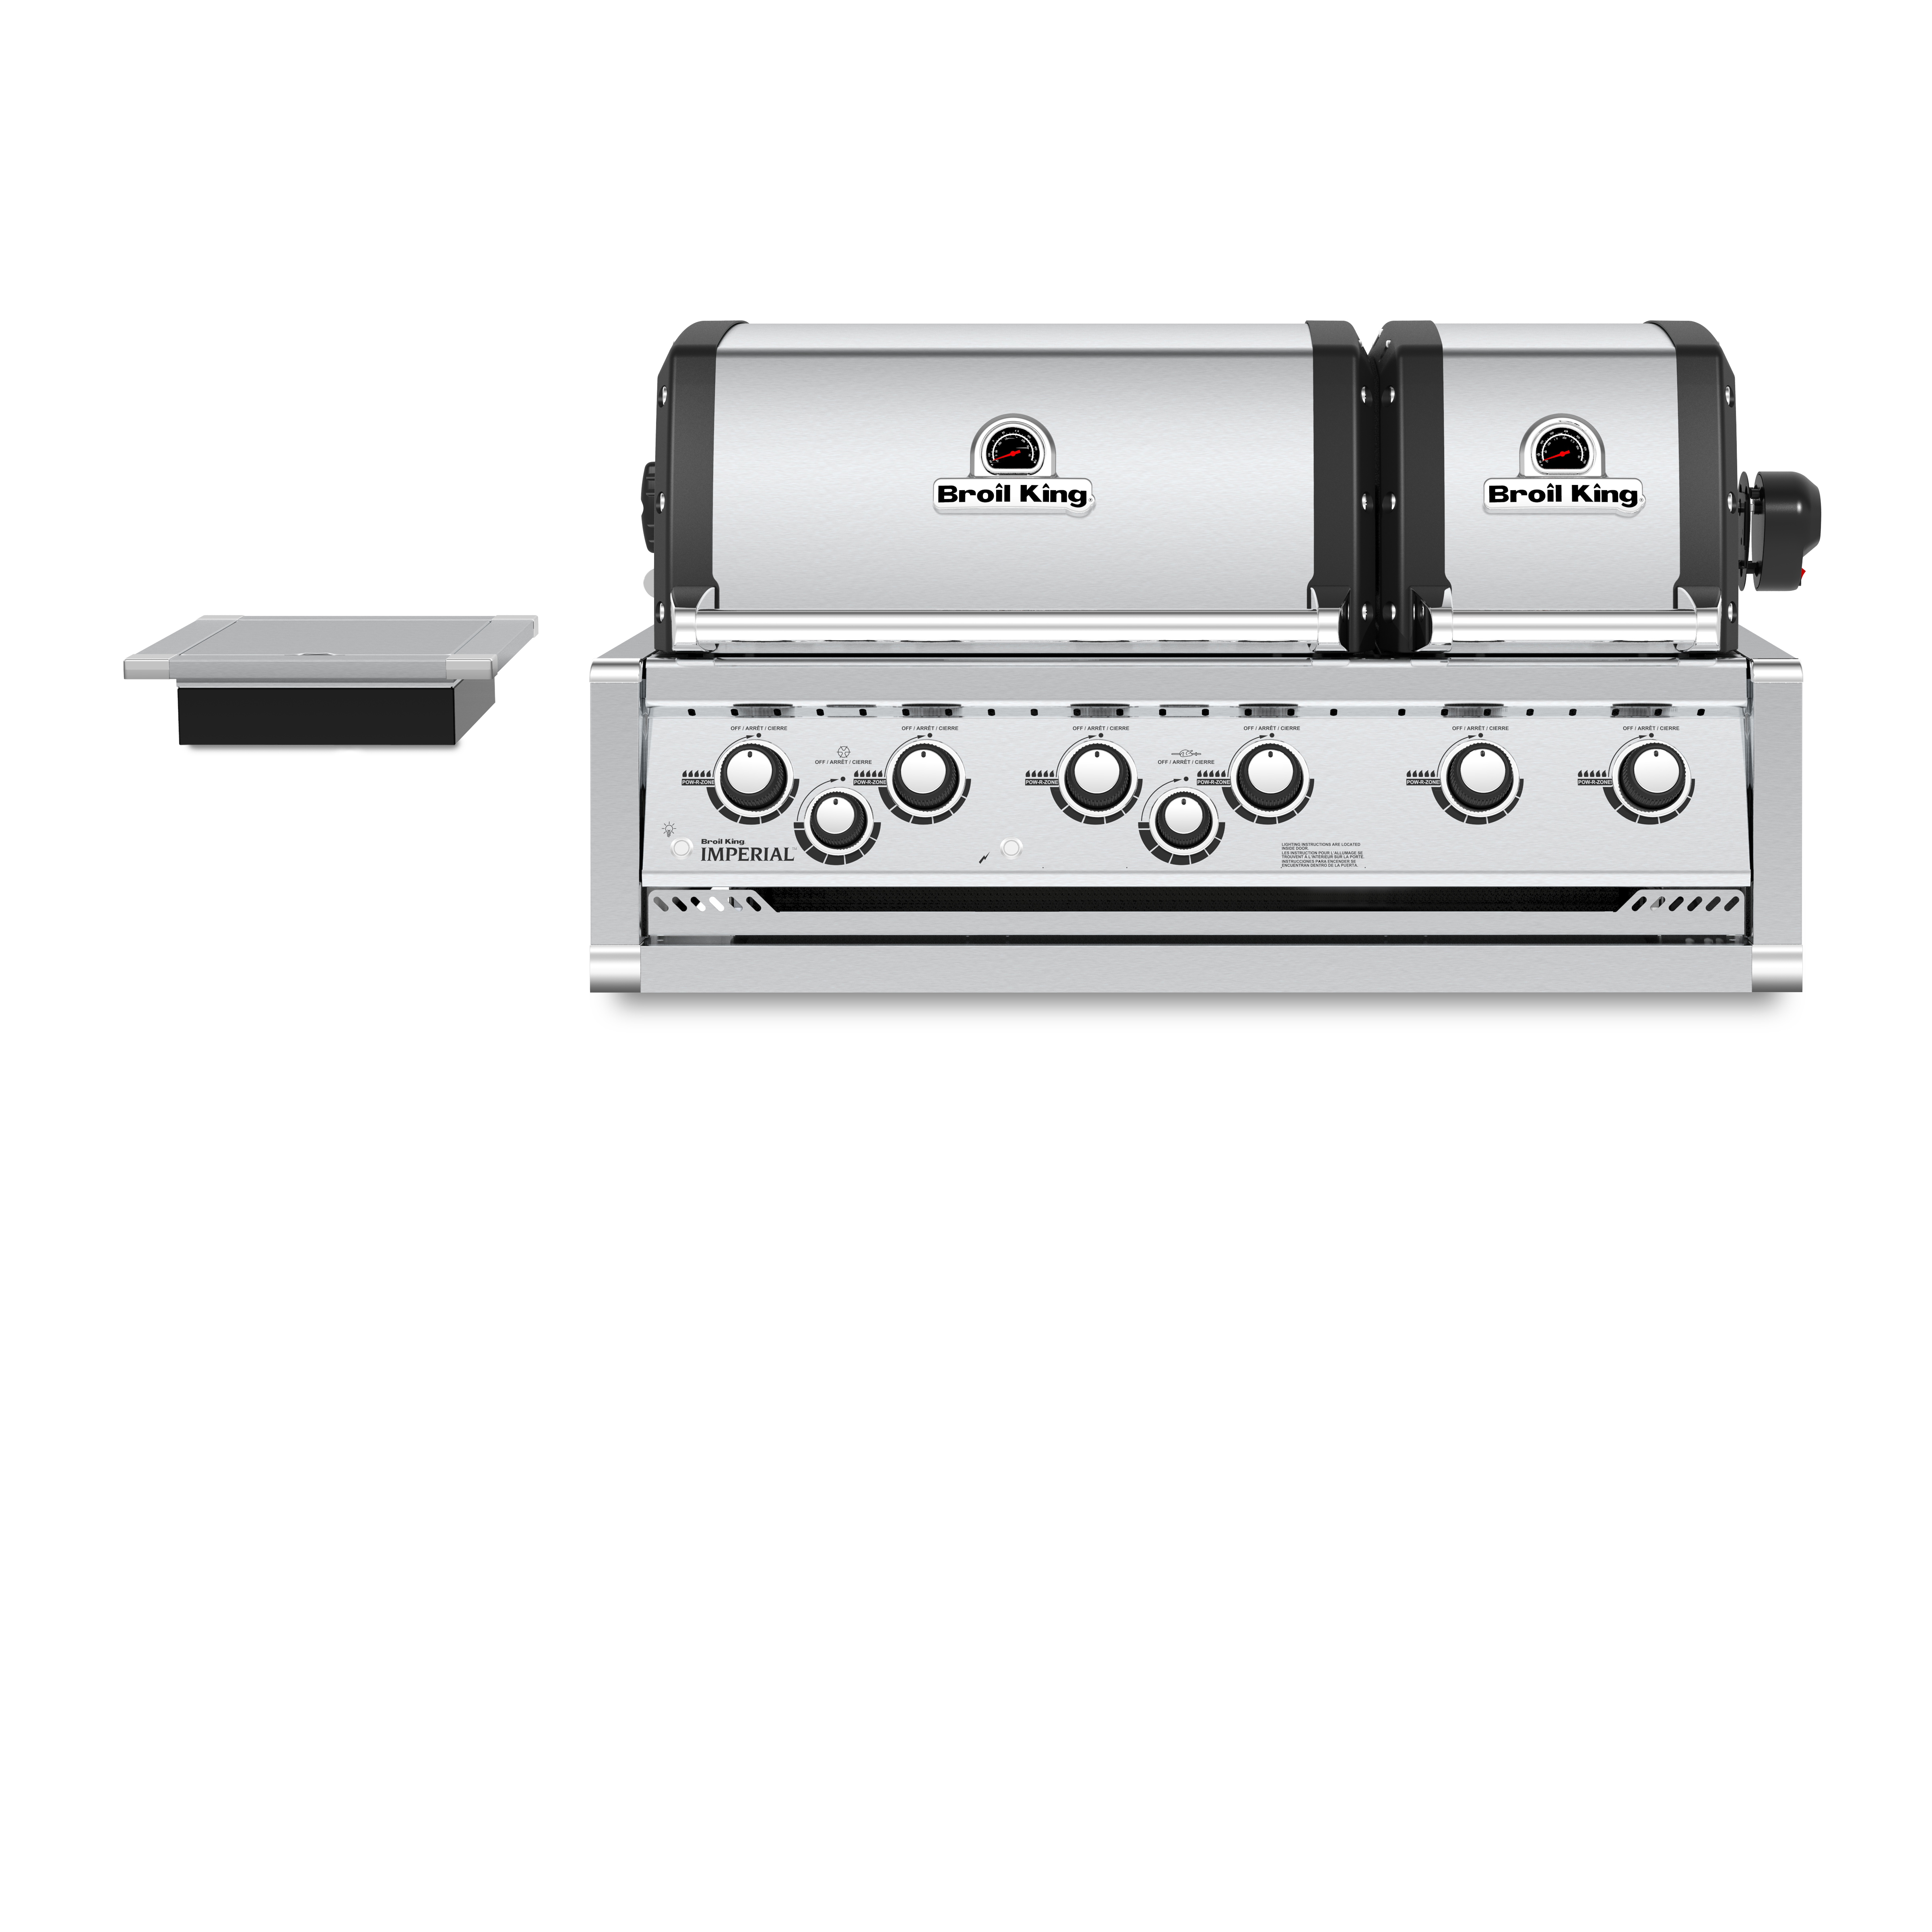 Broil King Imperial 690 XL Pro - Built-In Head